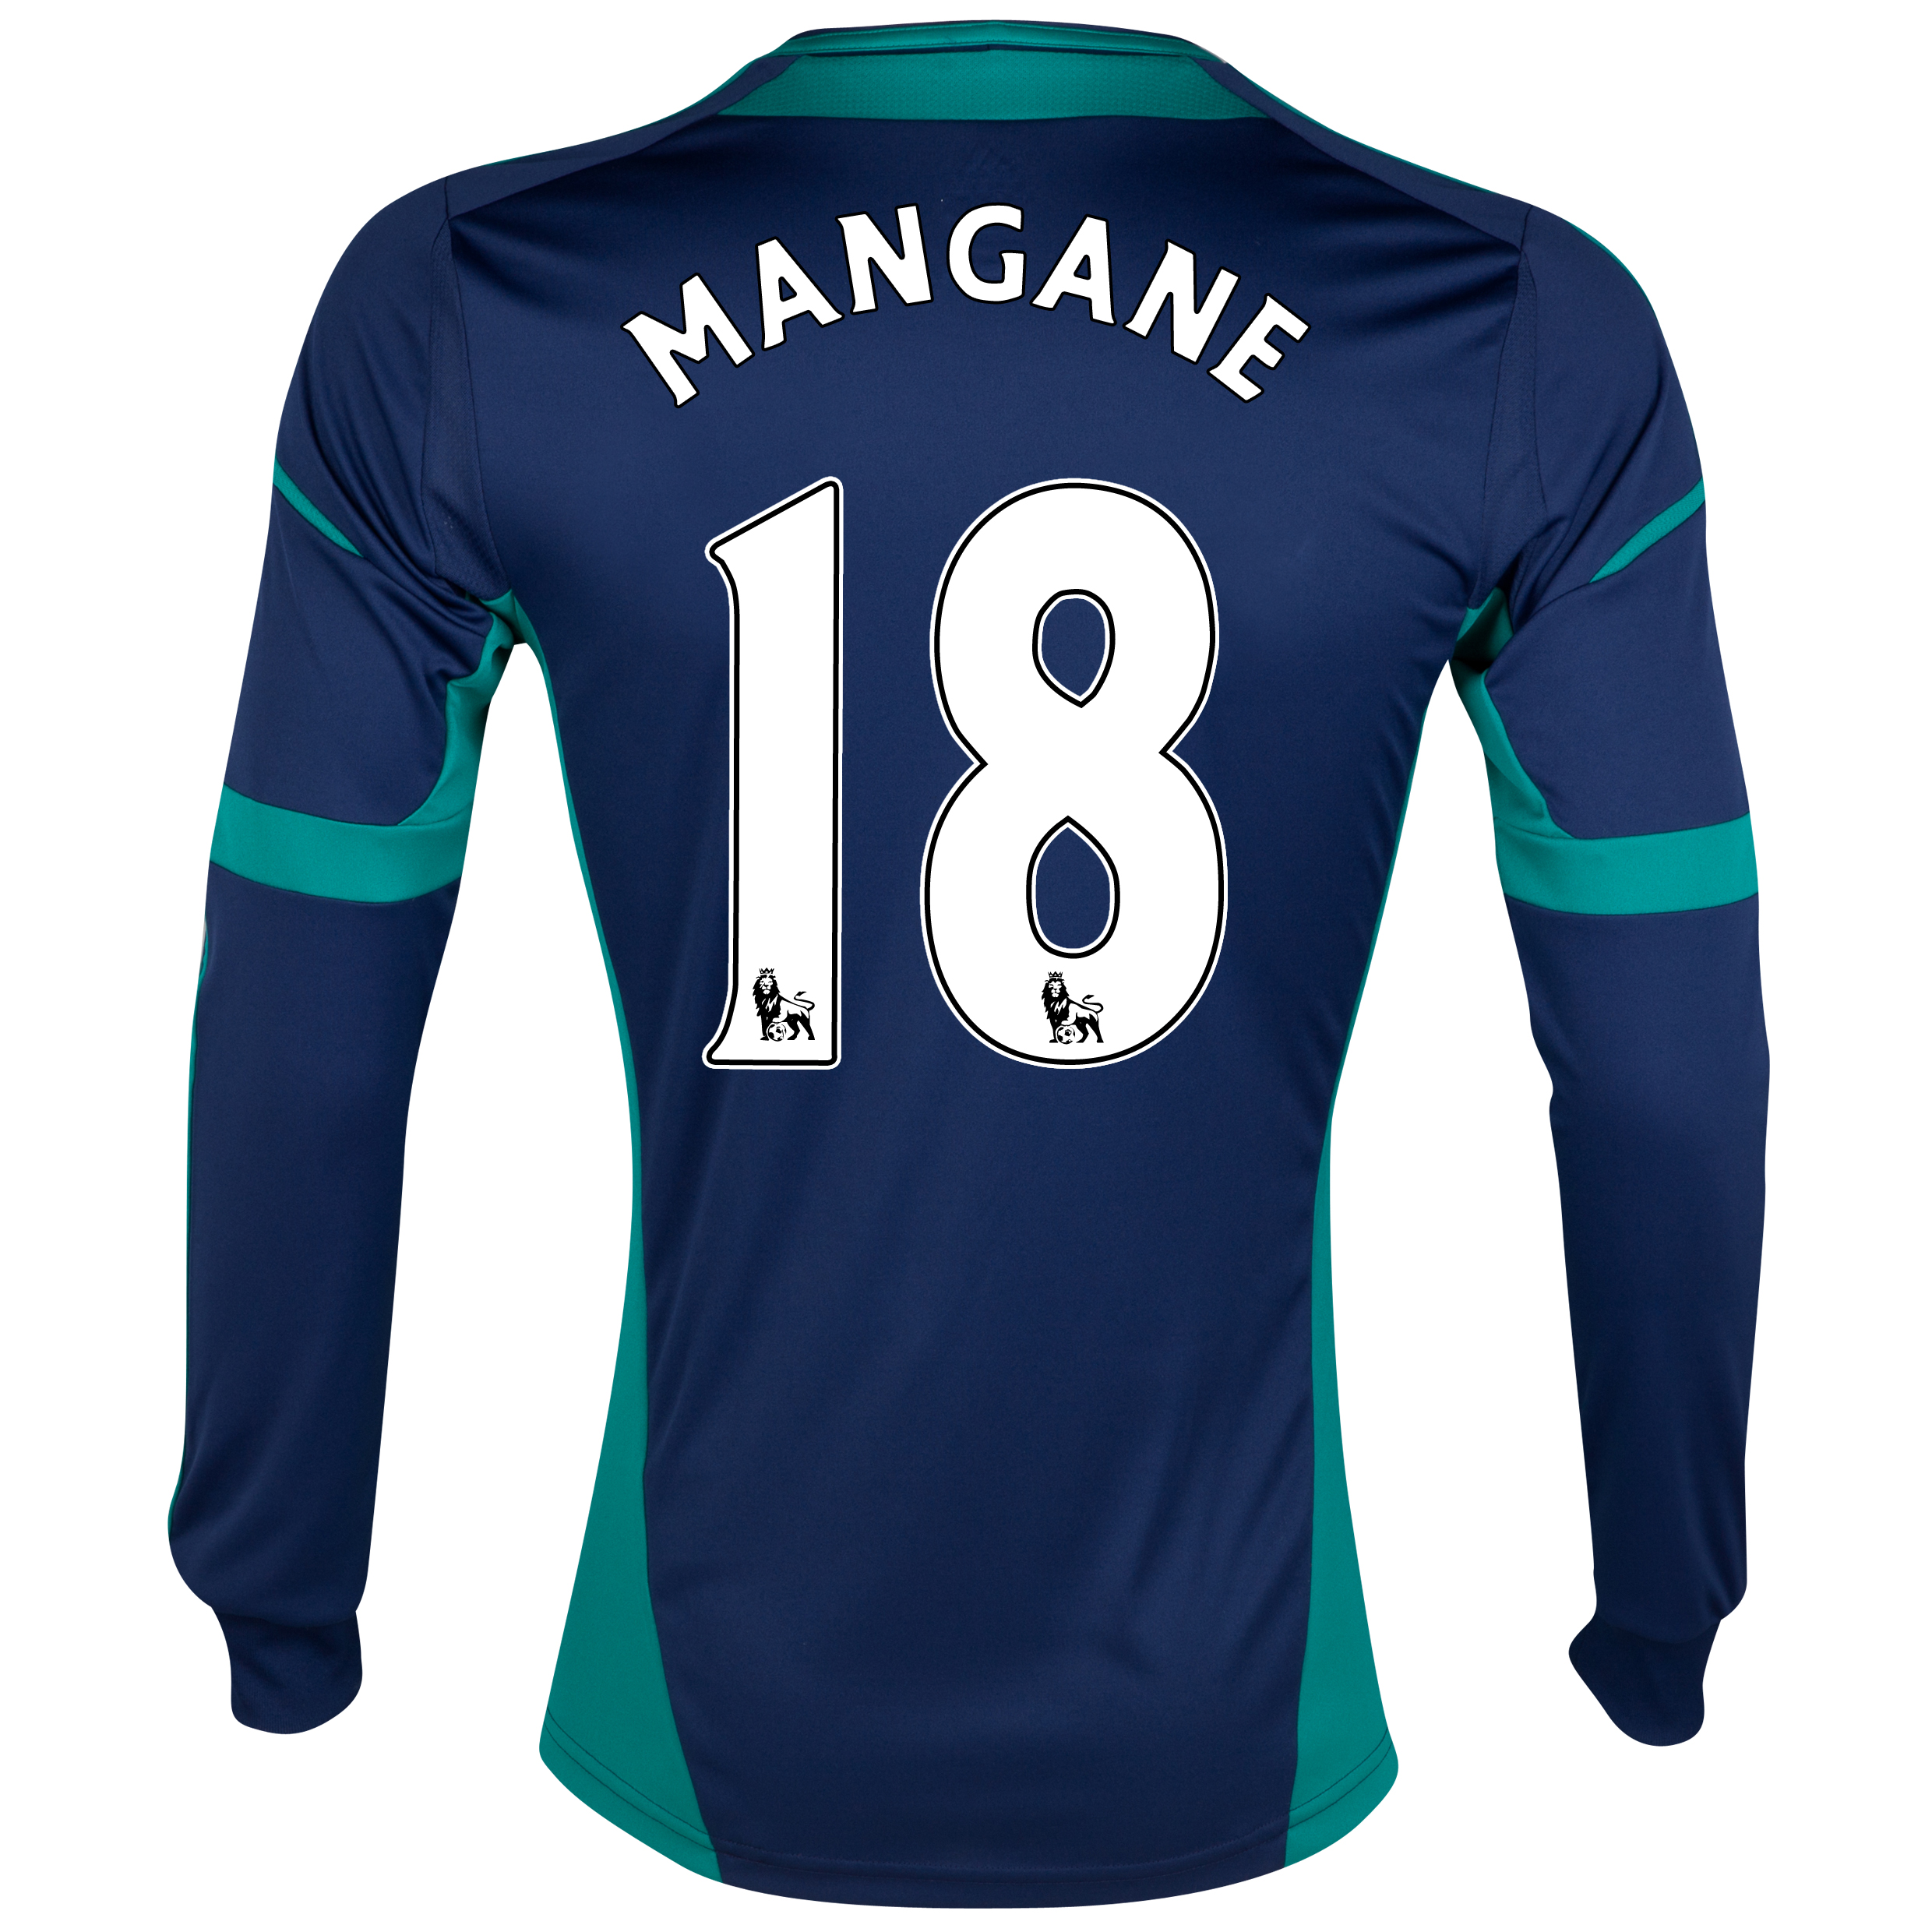 Sunderland Away Shirt 2012/13 - Long Sleeved with Mangane 18 printing